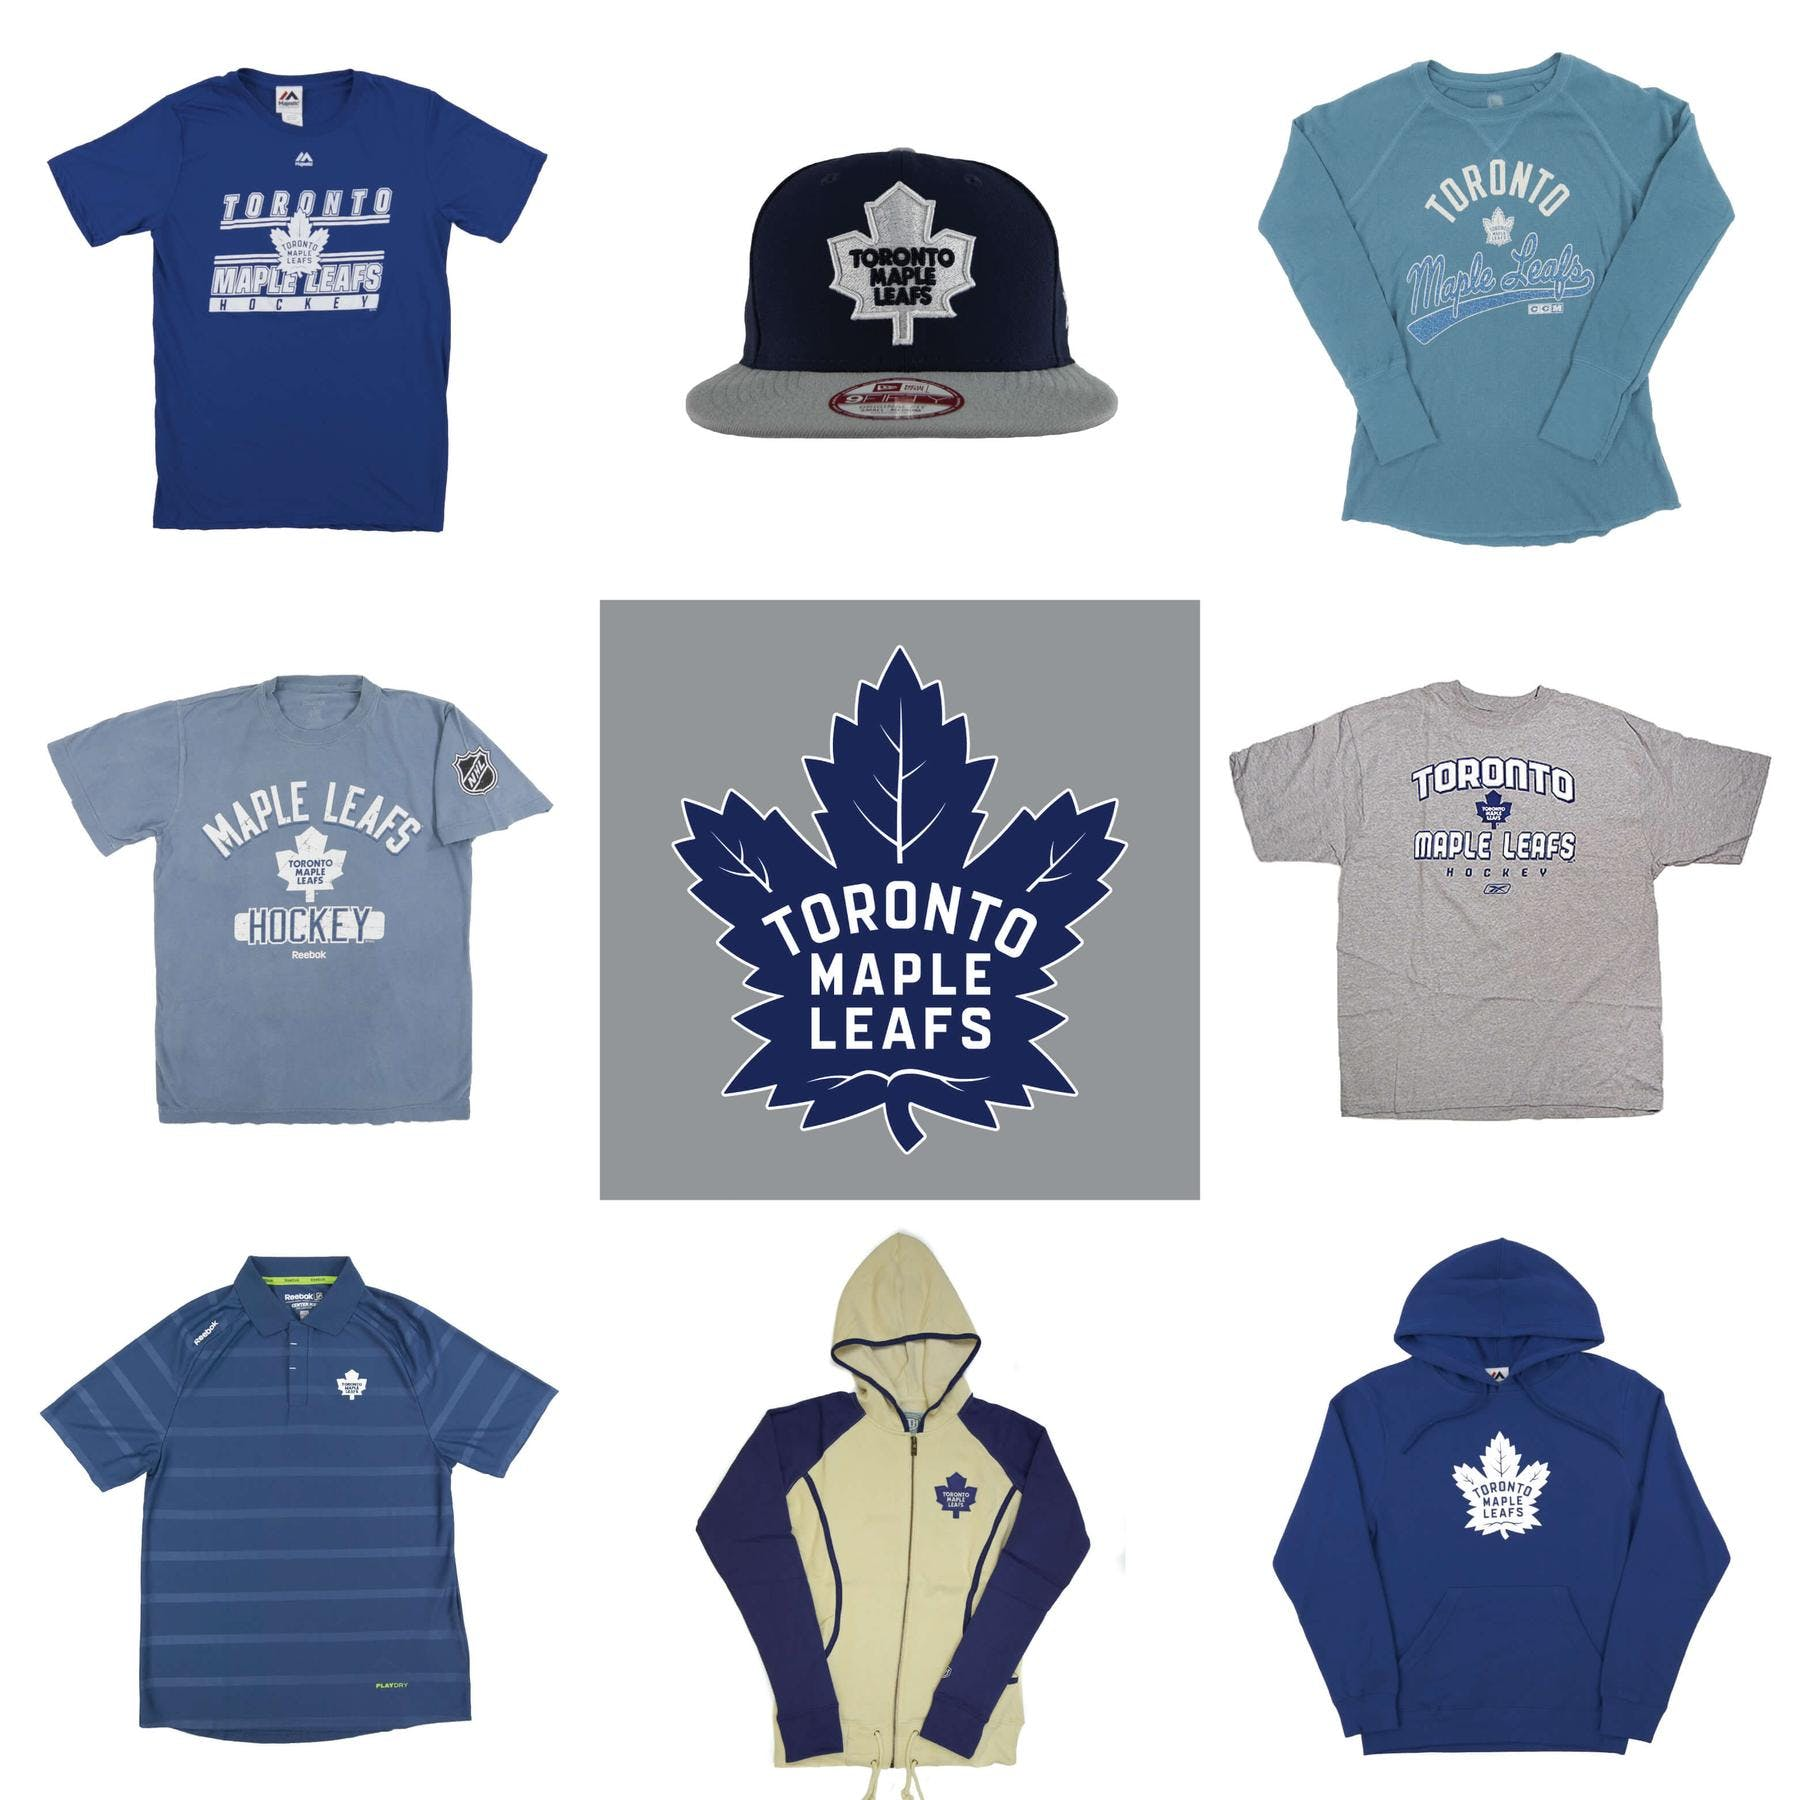 on sale ab8f0 731ff Toronto Maple Leafs Officially Licensed NHL Apparel Liquidation - 1,110+  Items, $37,000+ SRP!